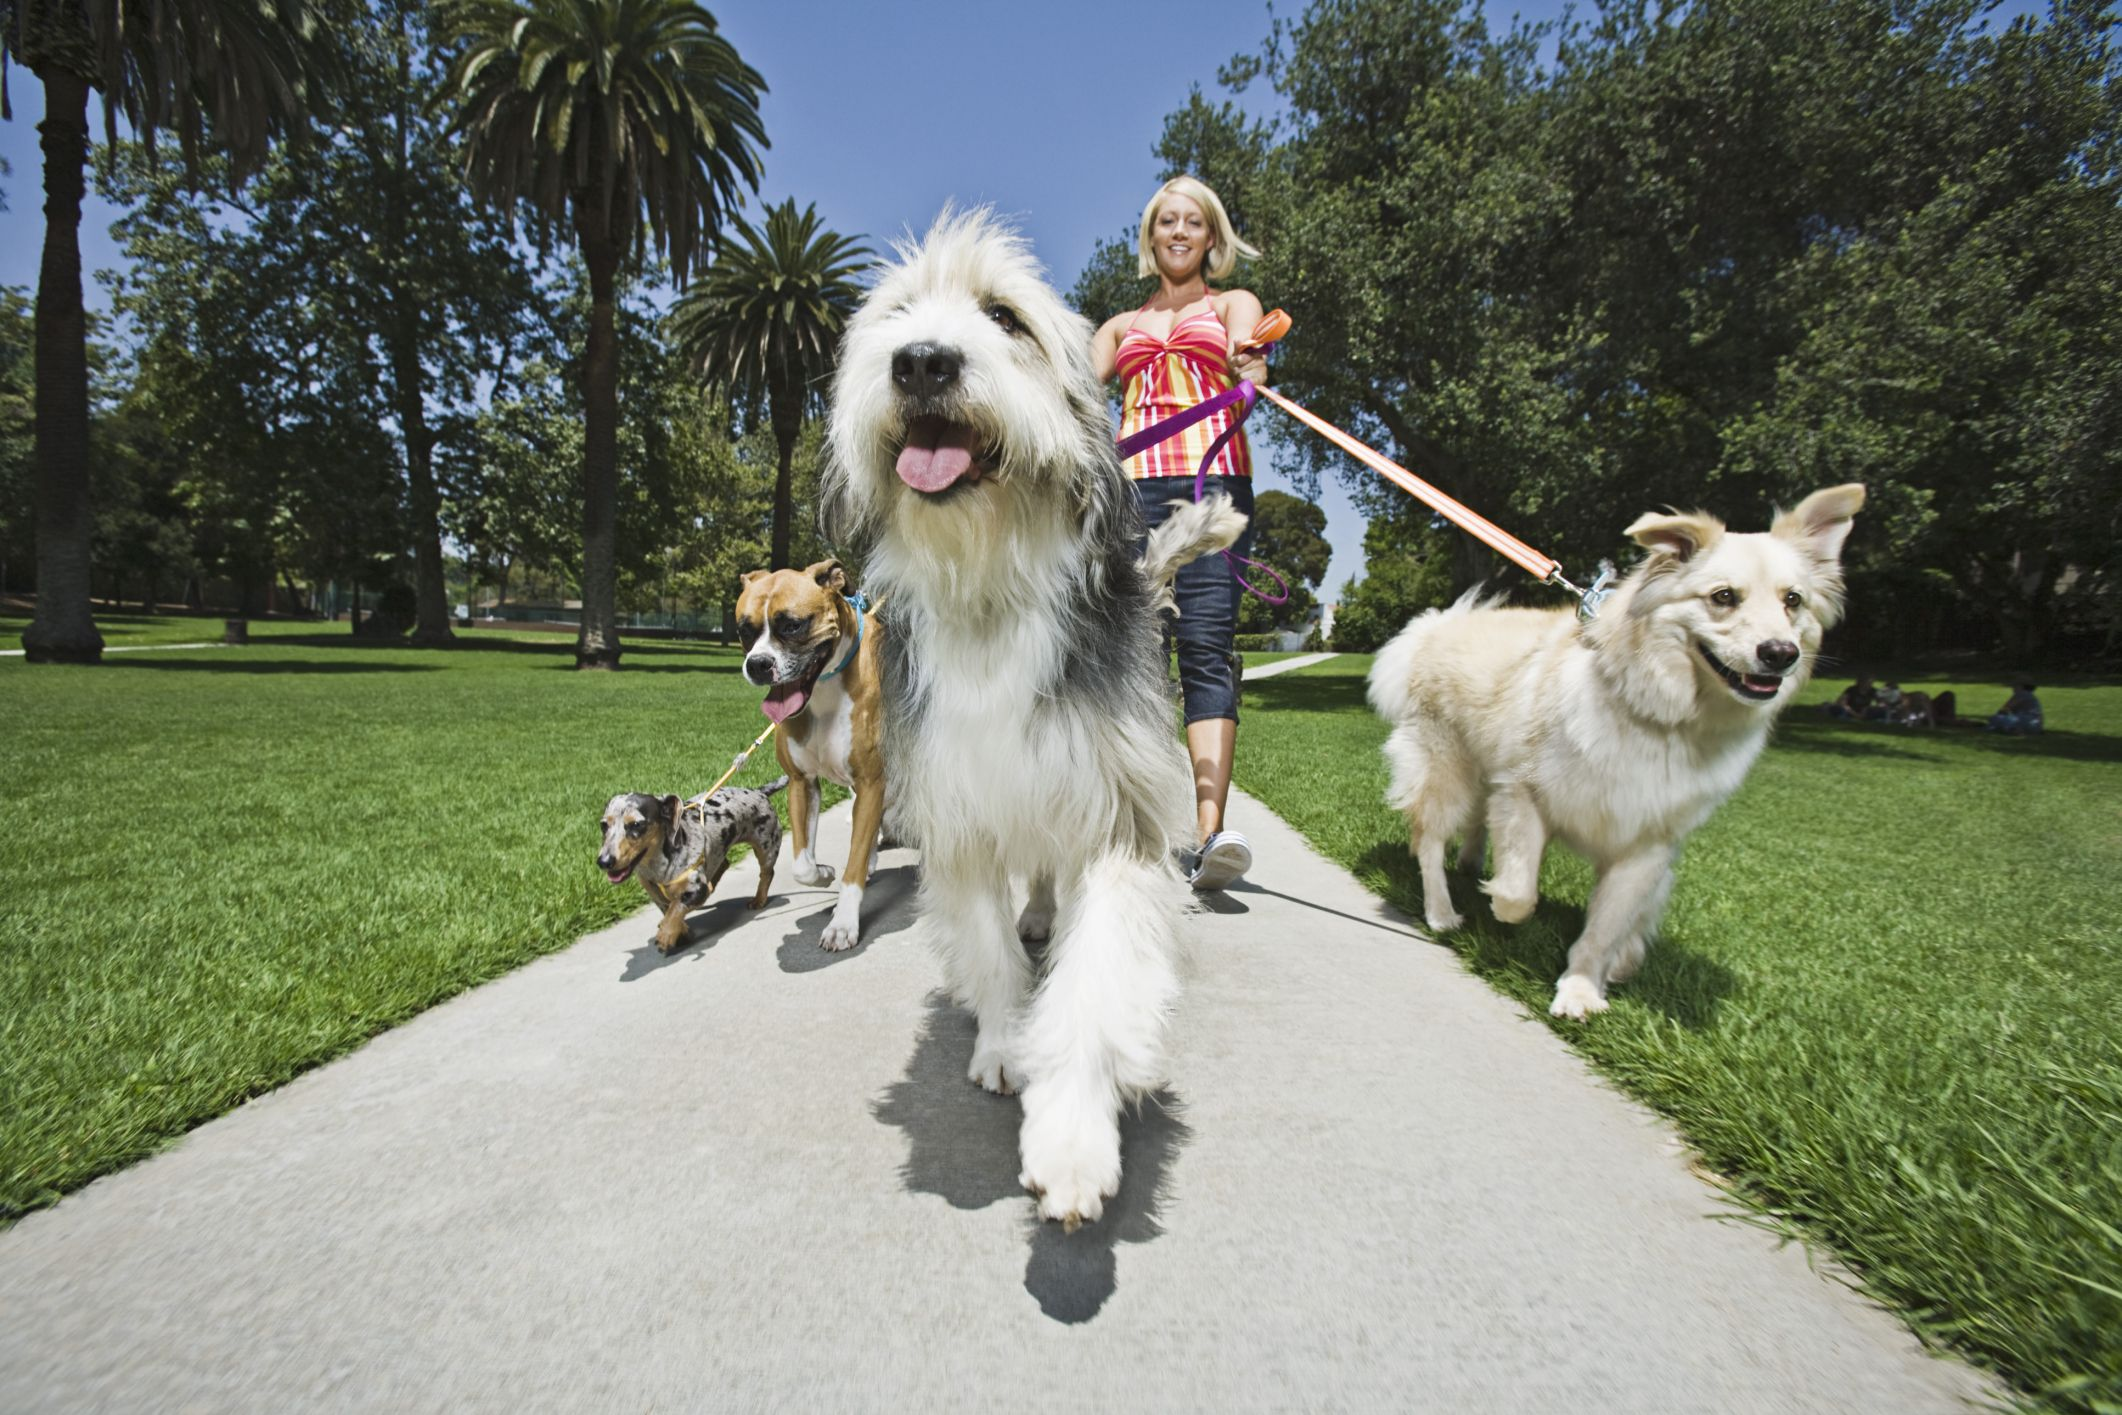 Do You Know The Top 10 Hobbies That Can Pay Off Find Out The Top 10 Hobbies That Can Pay Off In This Article From Howstuffworks Com Dog Friends Pets Animals